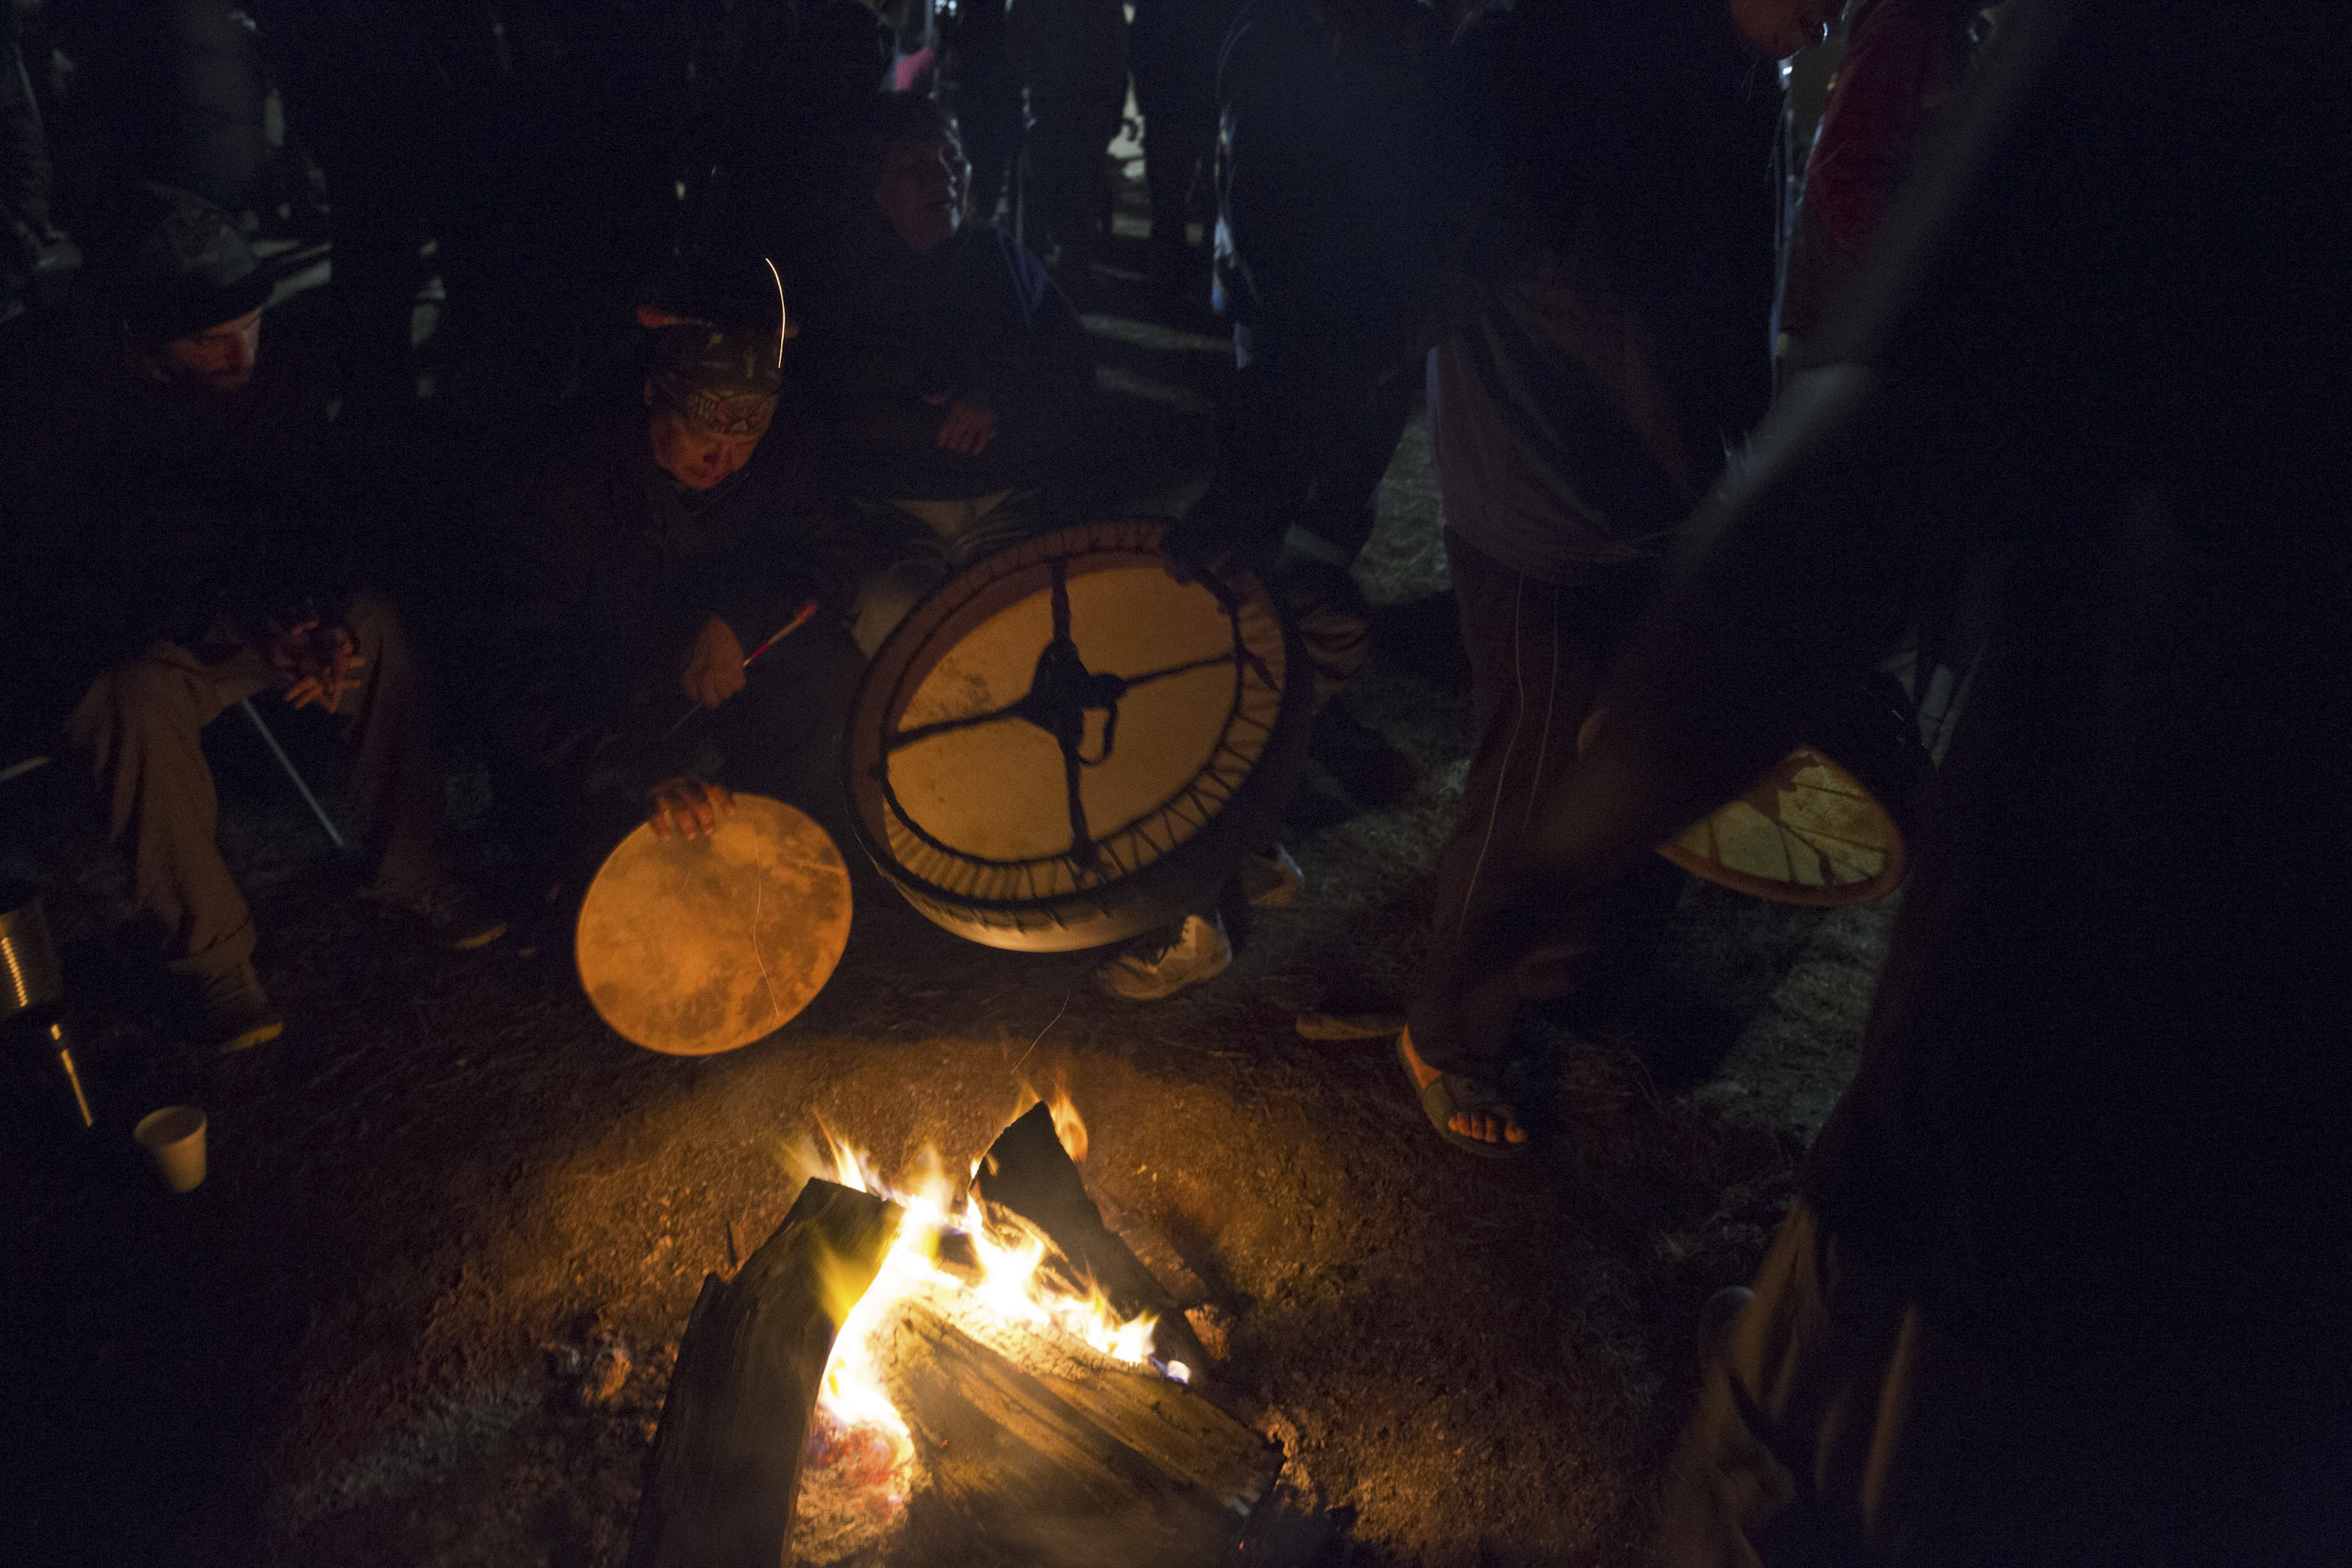 Drummers warm up their instruments over the fire Sacred Stone Camp, North Dakota, on Sept. 8, 2016.